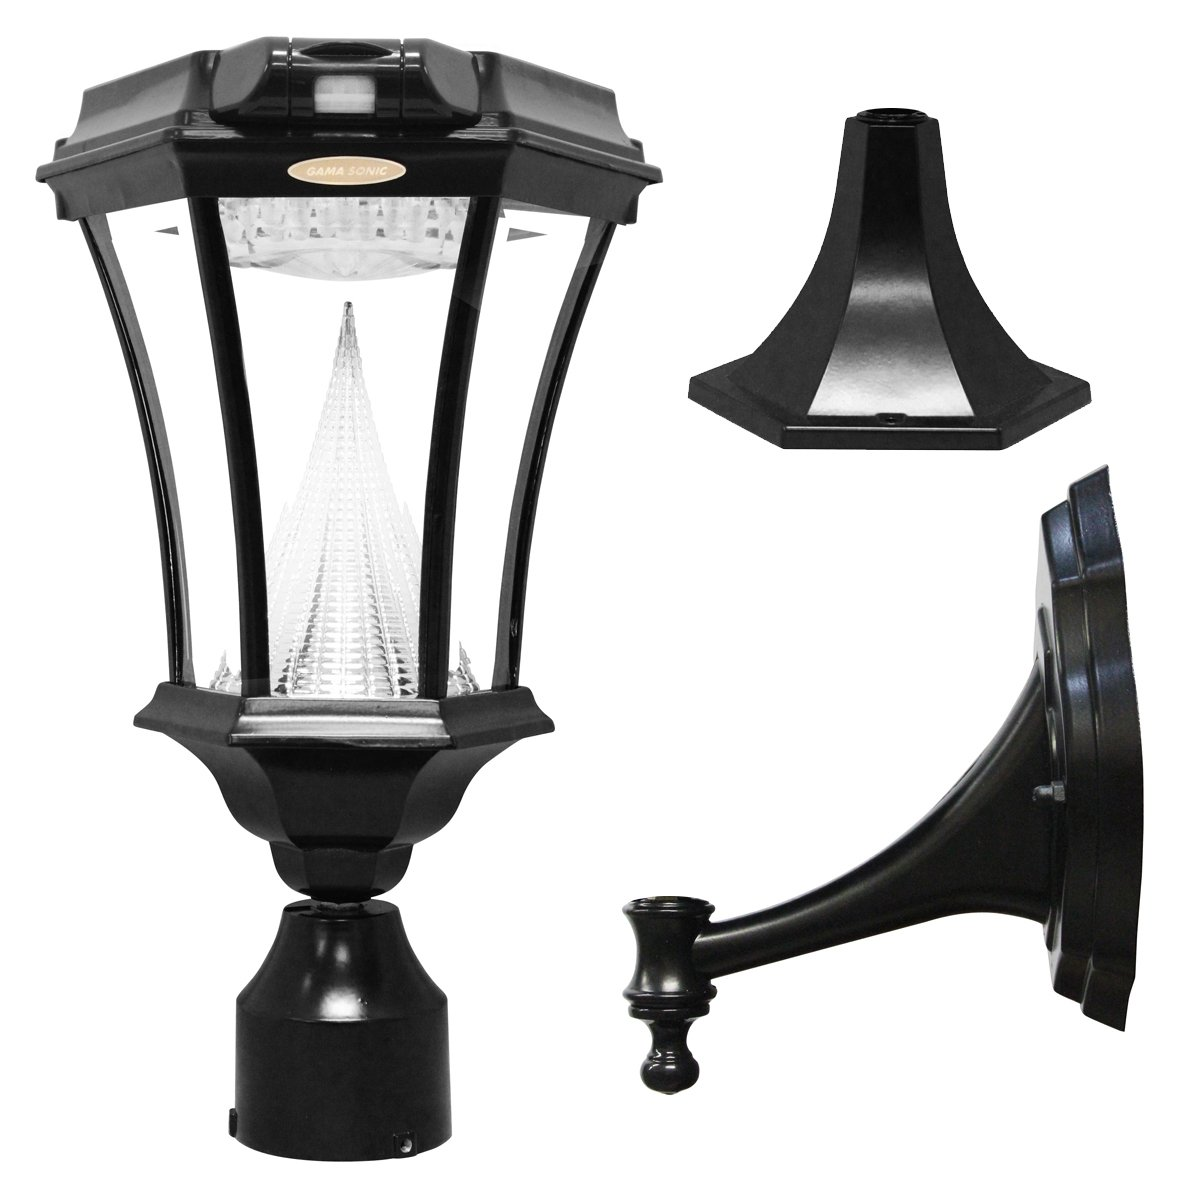 Gama Sonic Victorian Solar Outdoor LED Light Fixture with Motion Sensor, Bright-White LEDs, Pole/Post/Wall Mount Kit, Black Finish #GS-94FPW-PIR by Gama Sonic